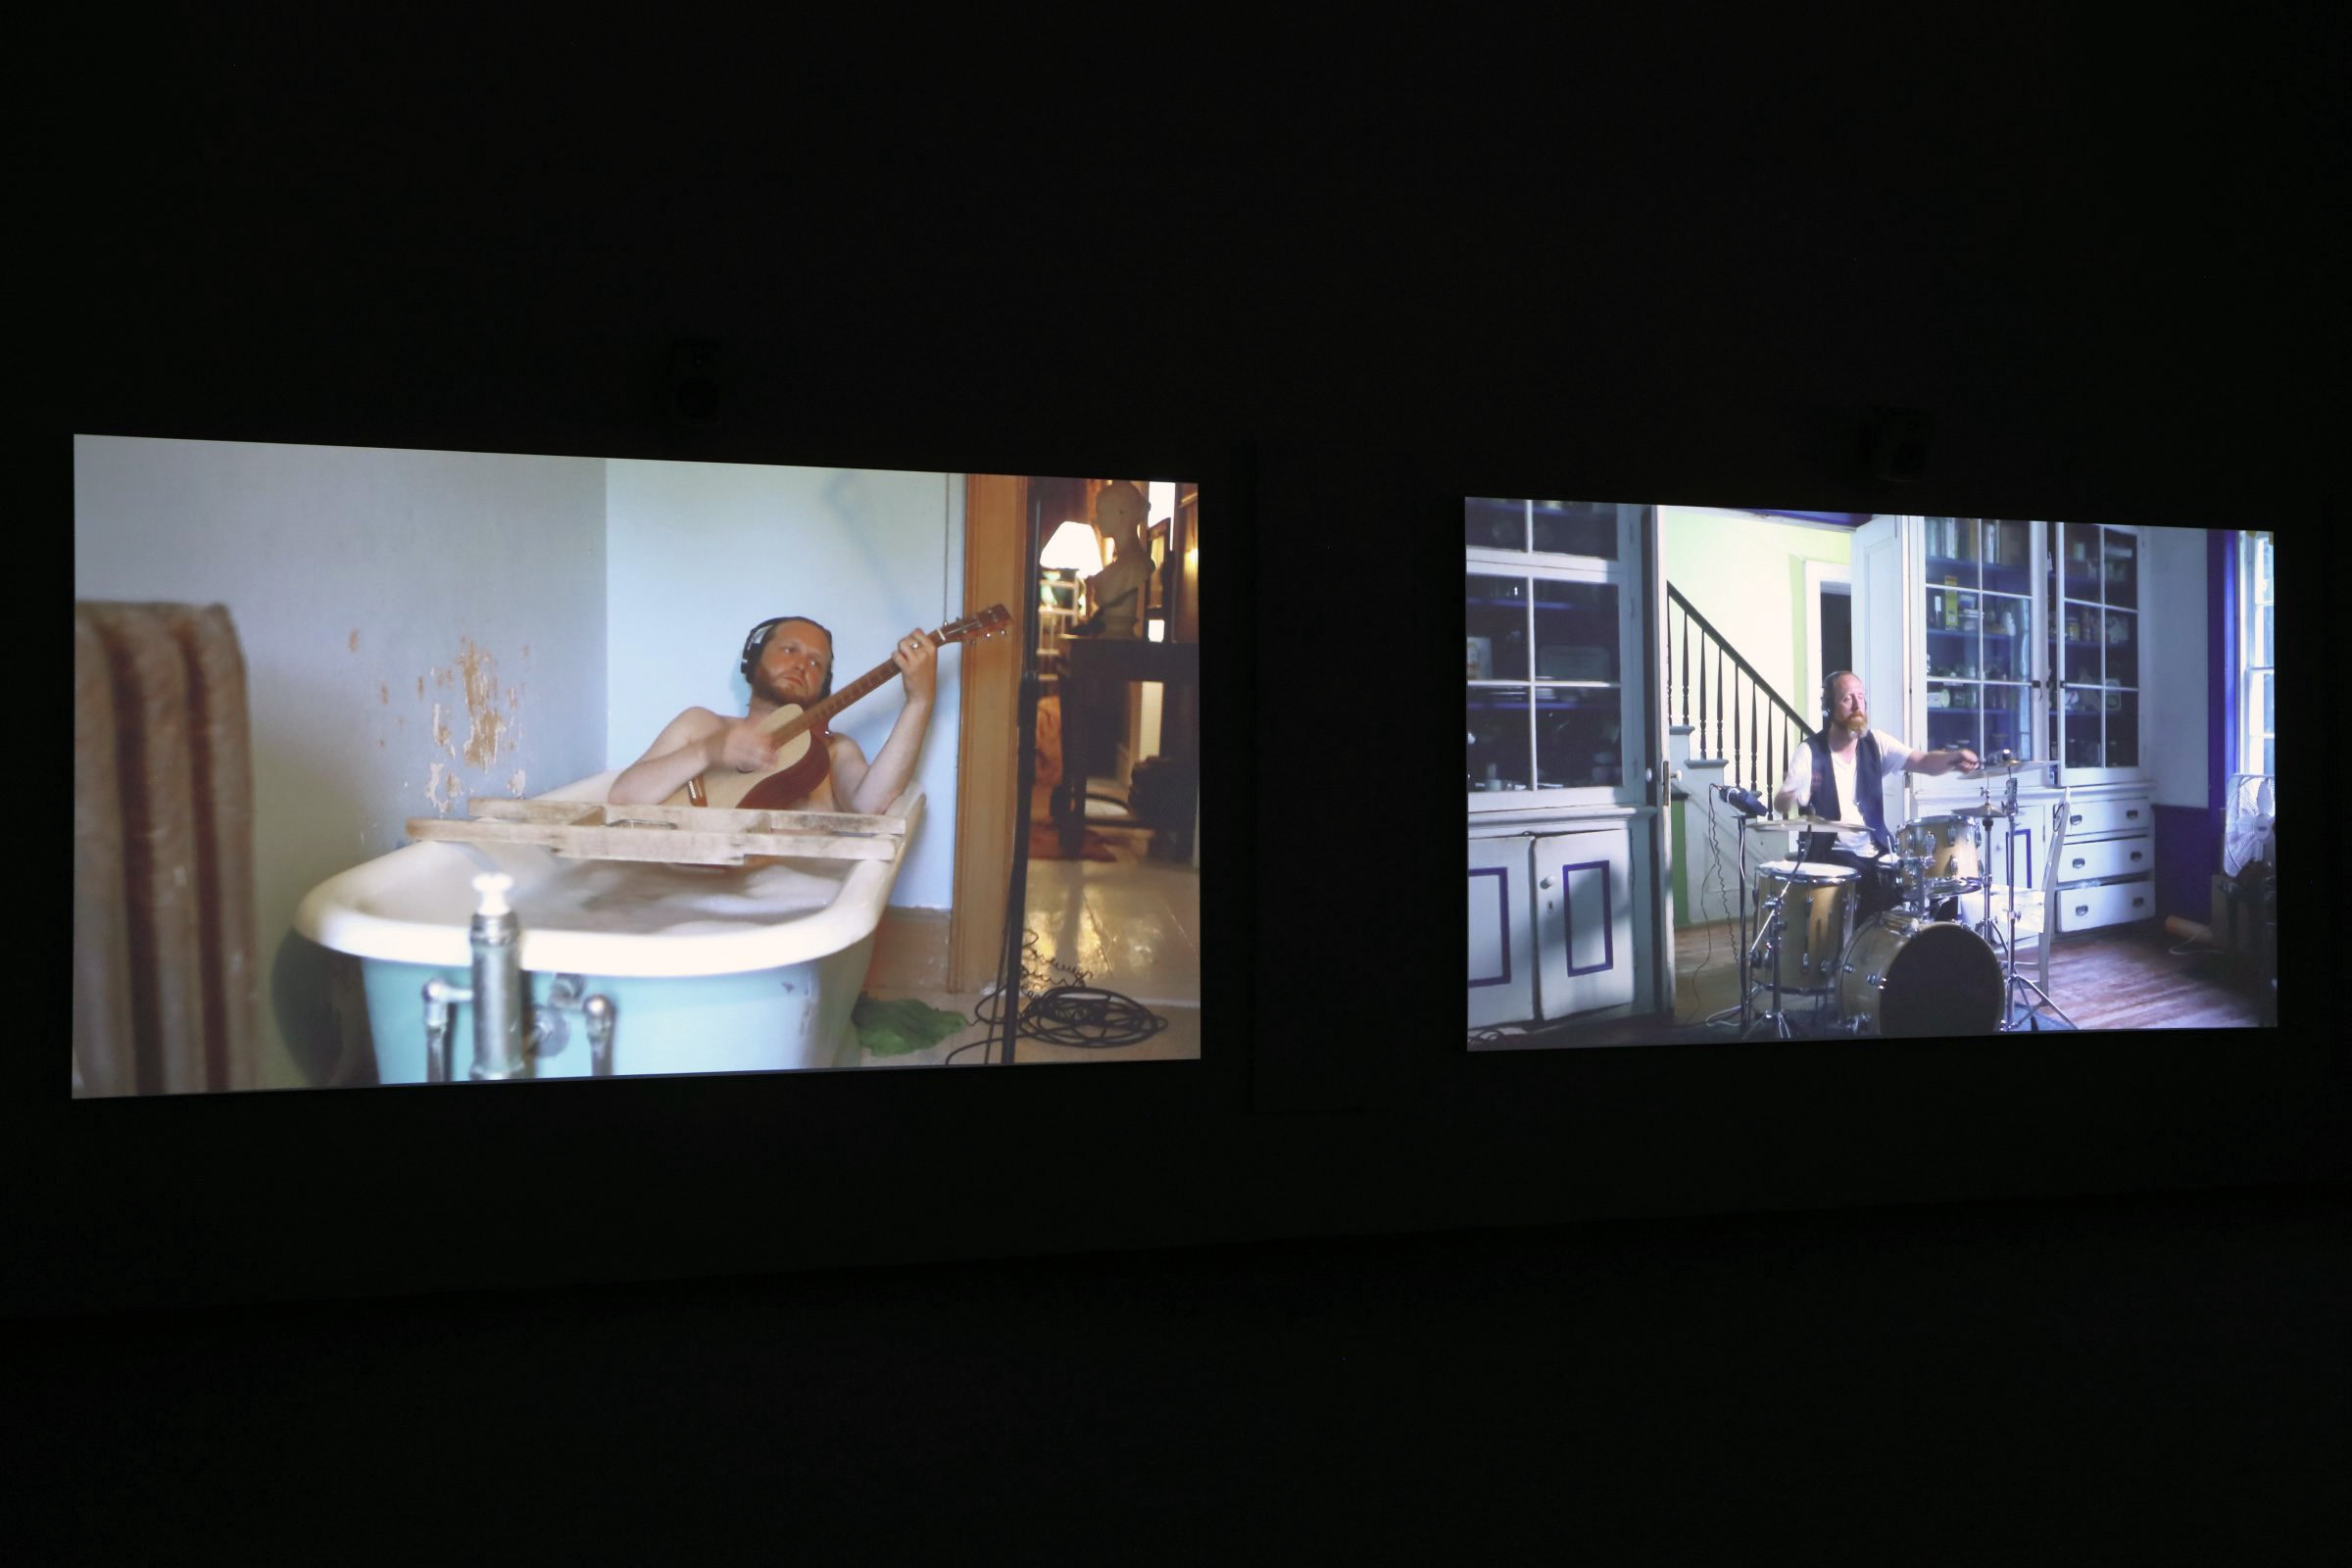 Installation view of two screens on a black background featuring musicians playing alone in separate rooms.